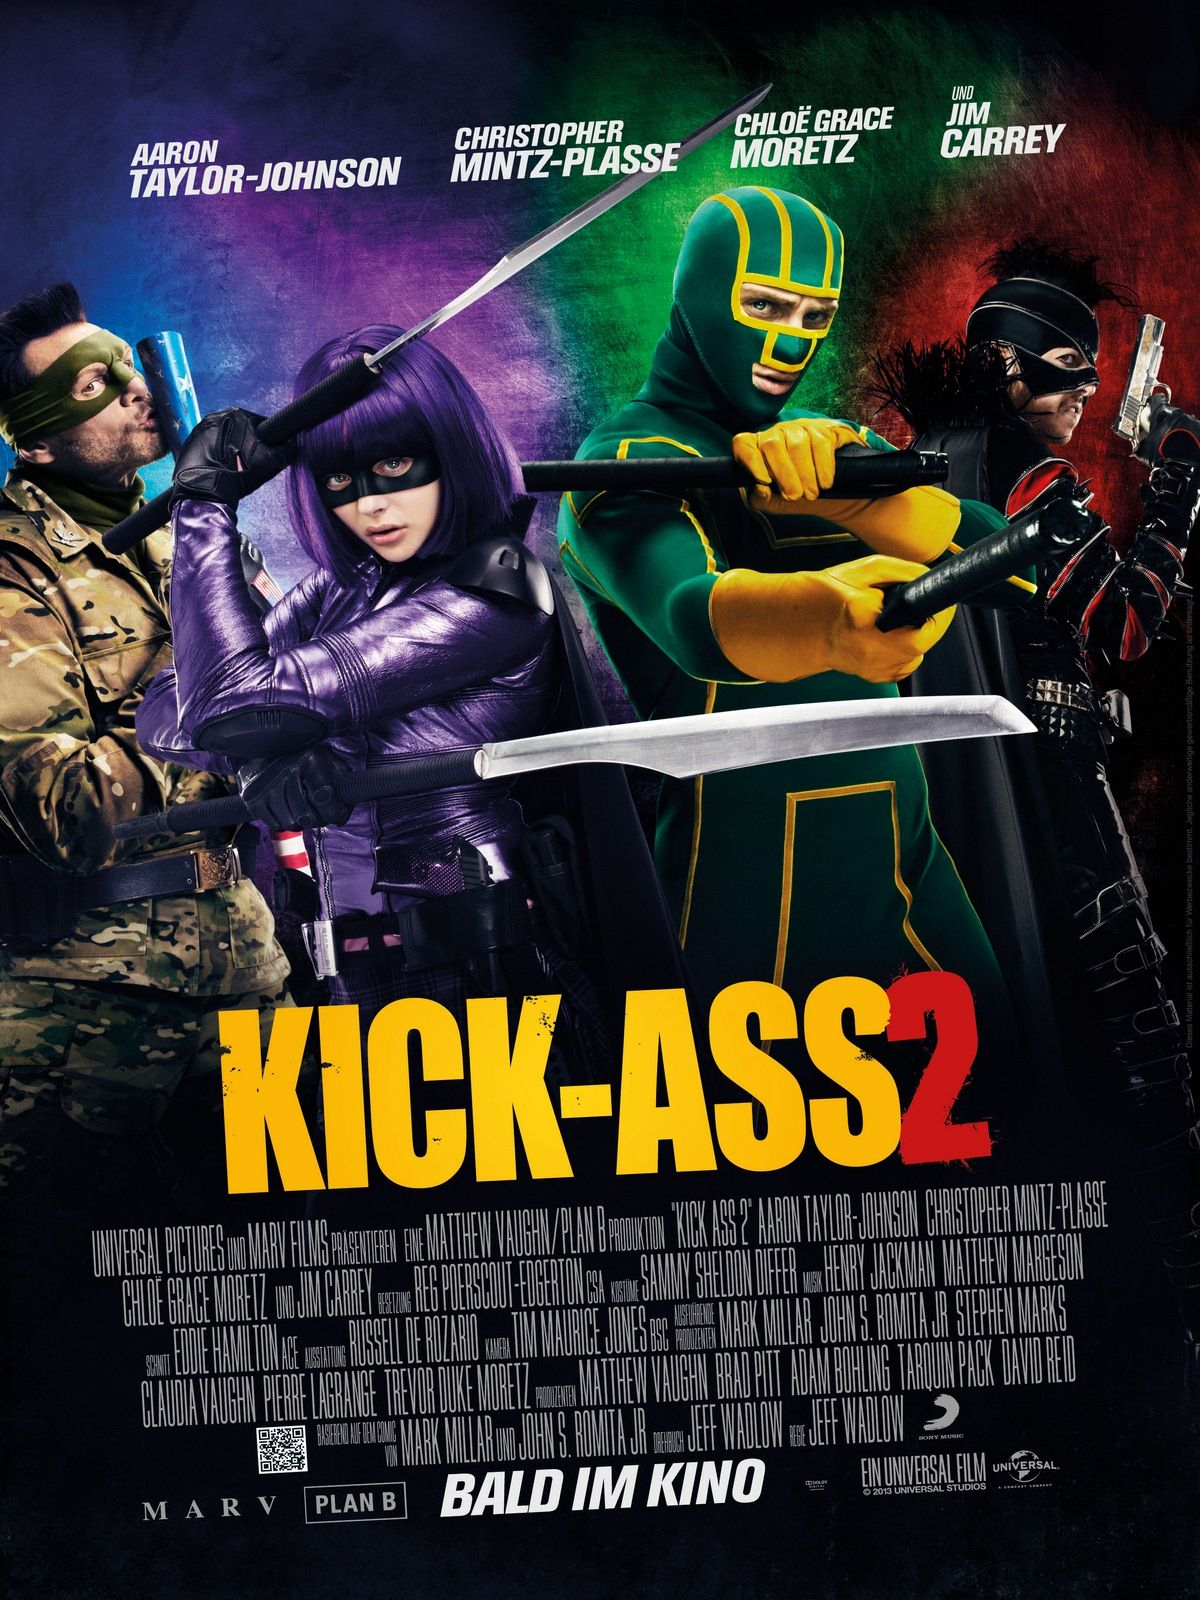 Kick ass movie release date think, that